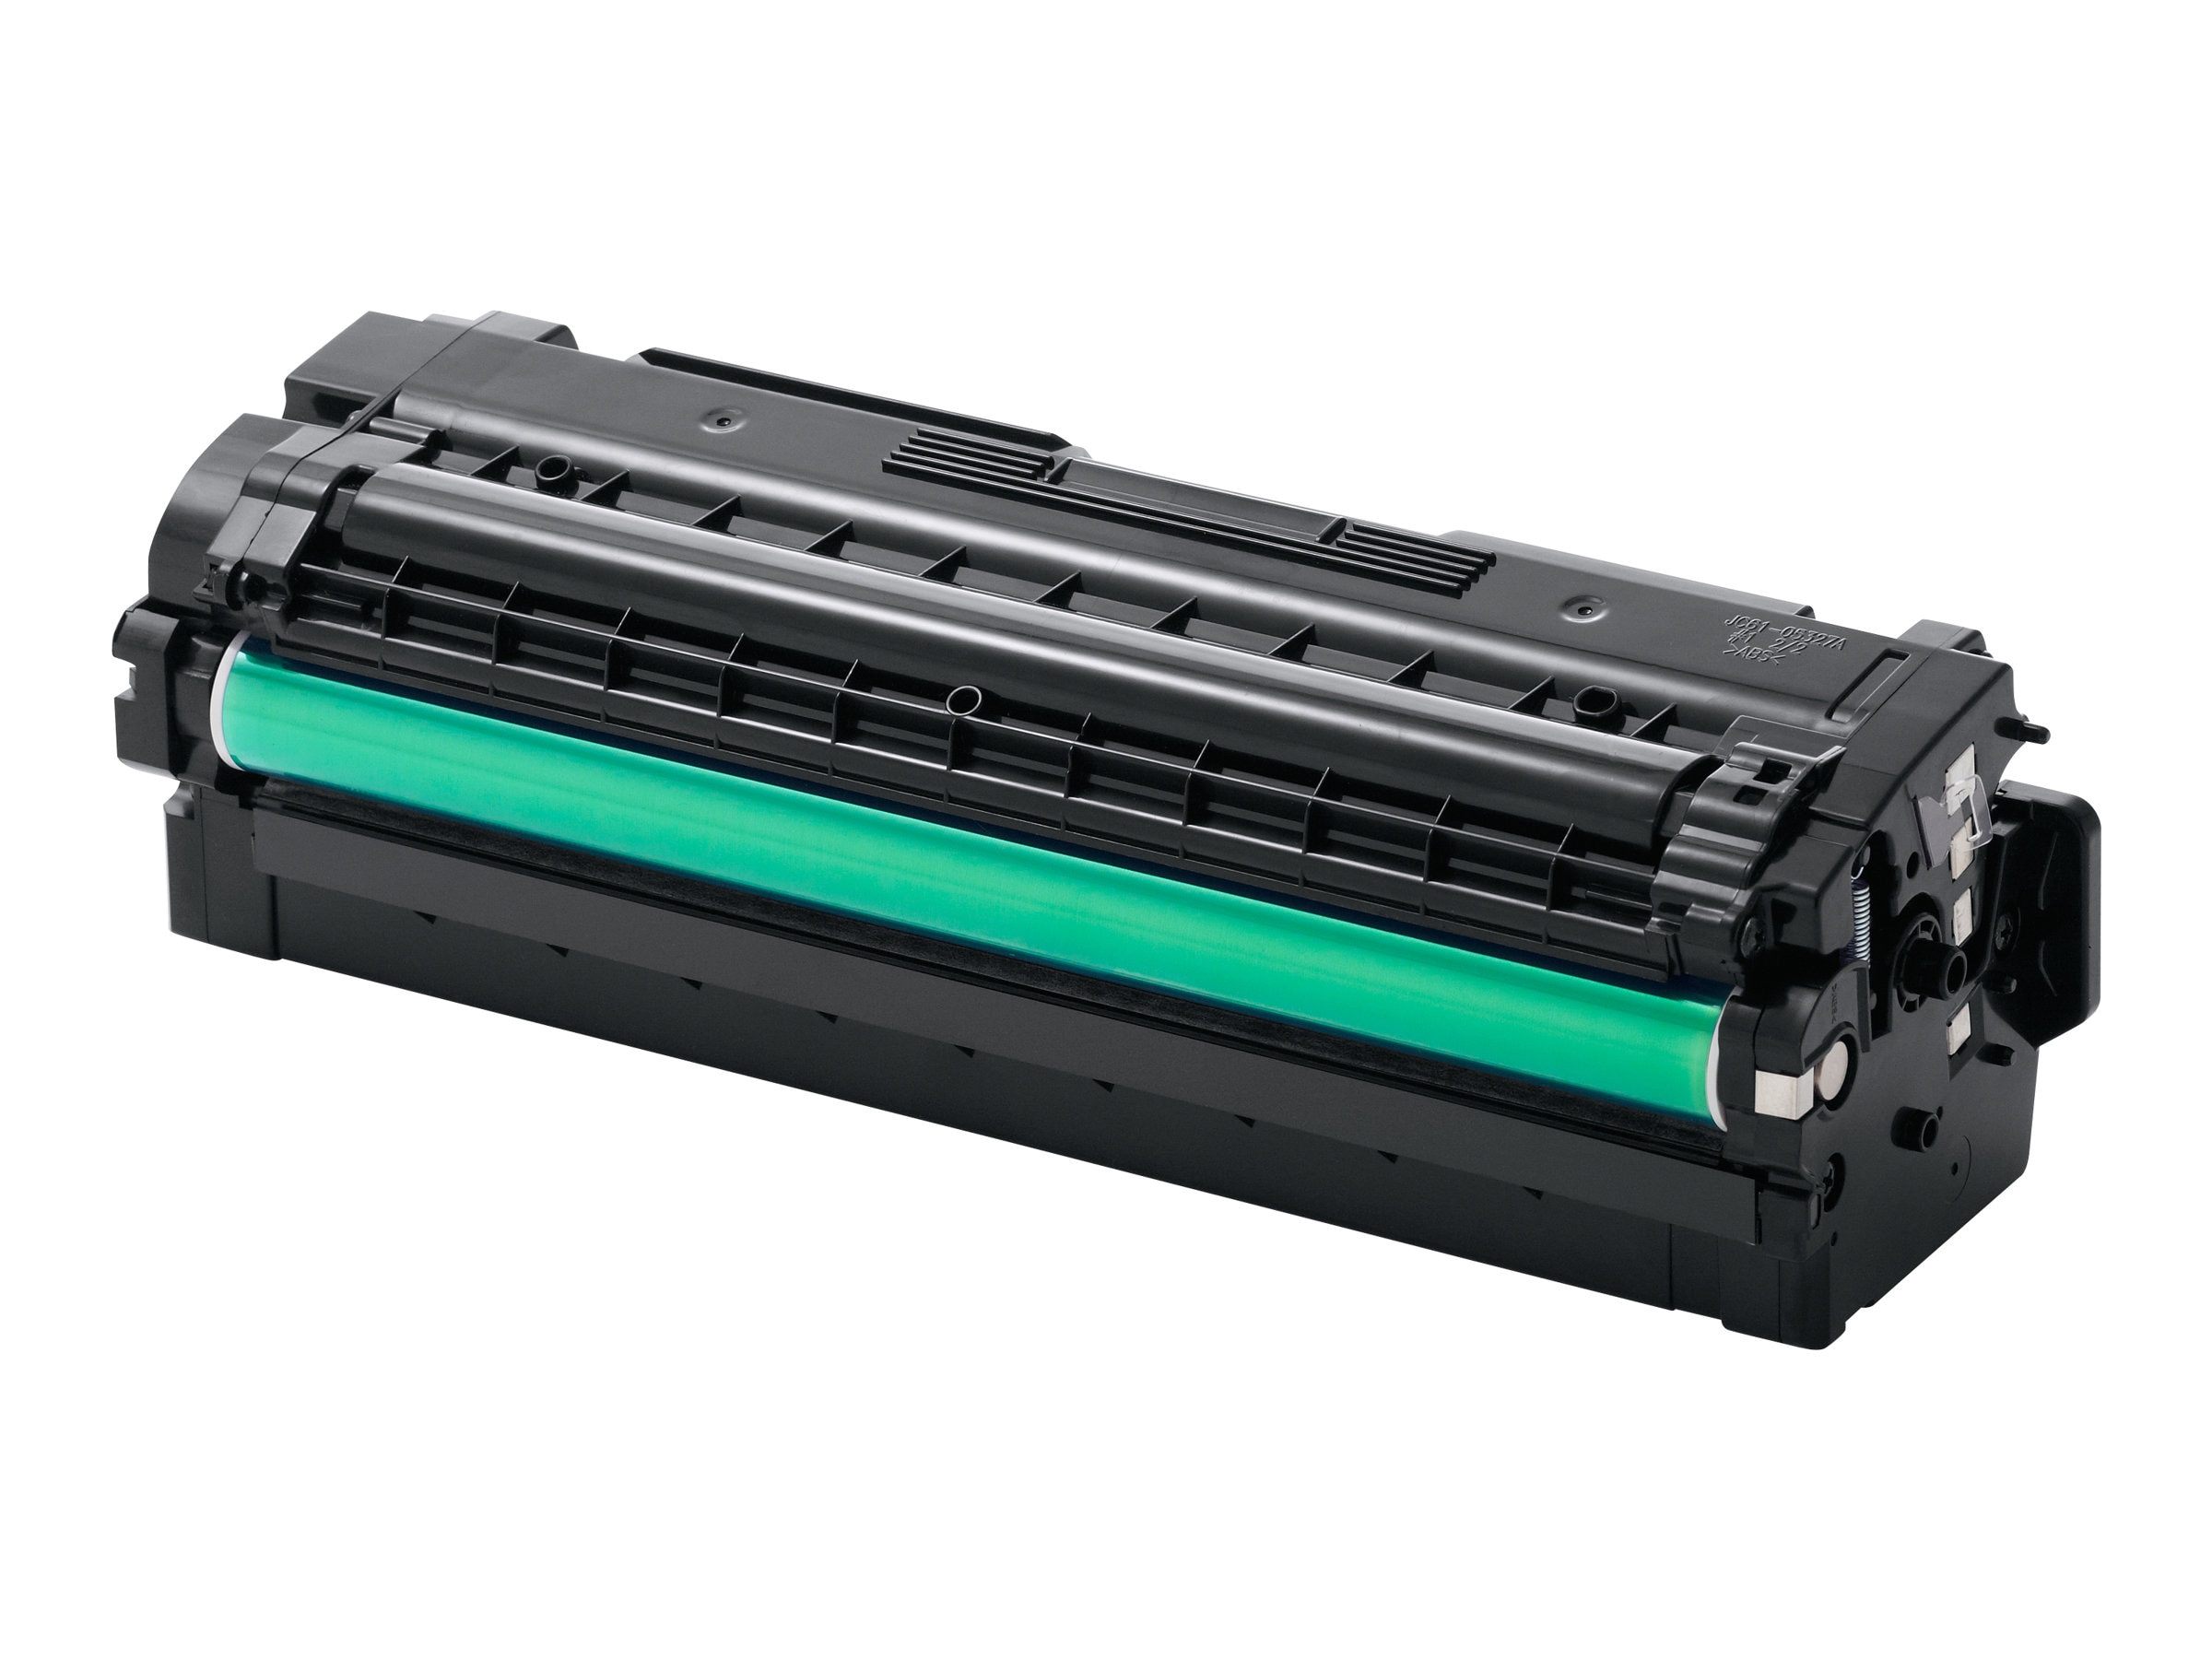 Samsung Black High Yield Toner Cartridge for CLX-6260FD & CLX-6260FW Color MFPs & CLP-680ND Color Printer, CLT-K506L, 14291558, Toner and Imaging Components